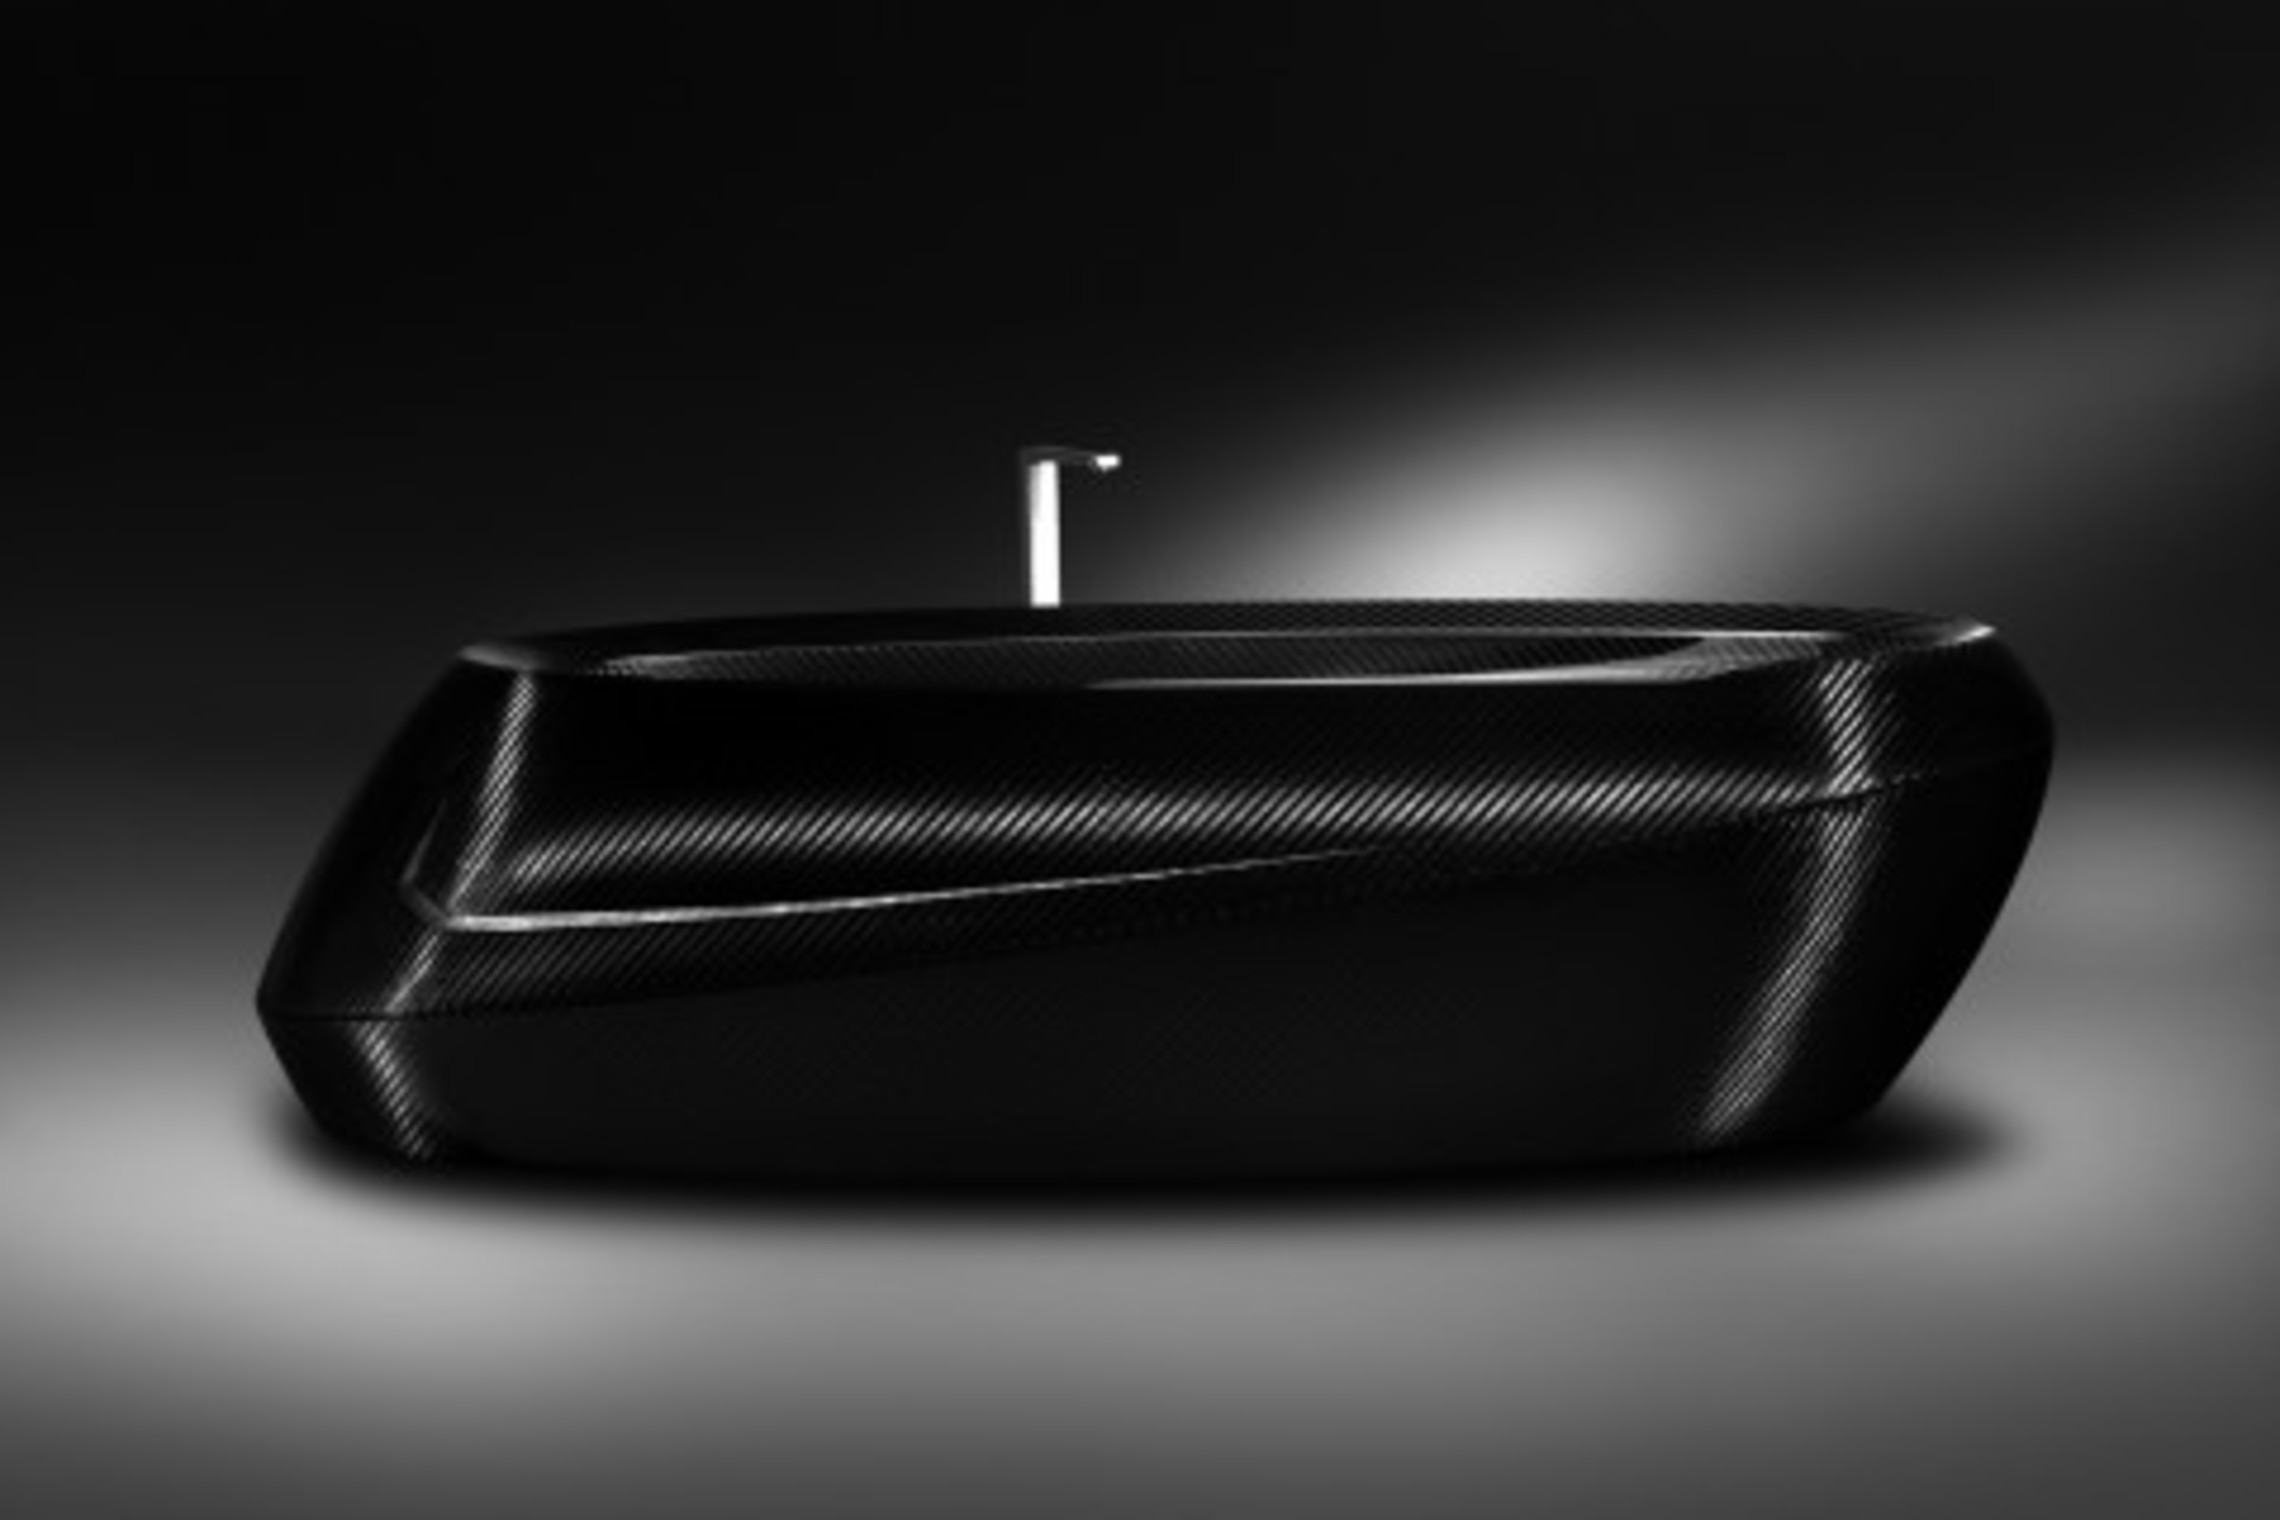 Limited Edition Carbon Fiber Bathtub